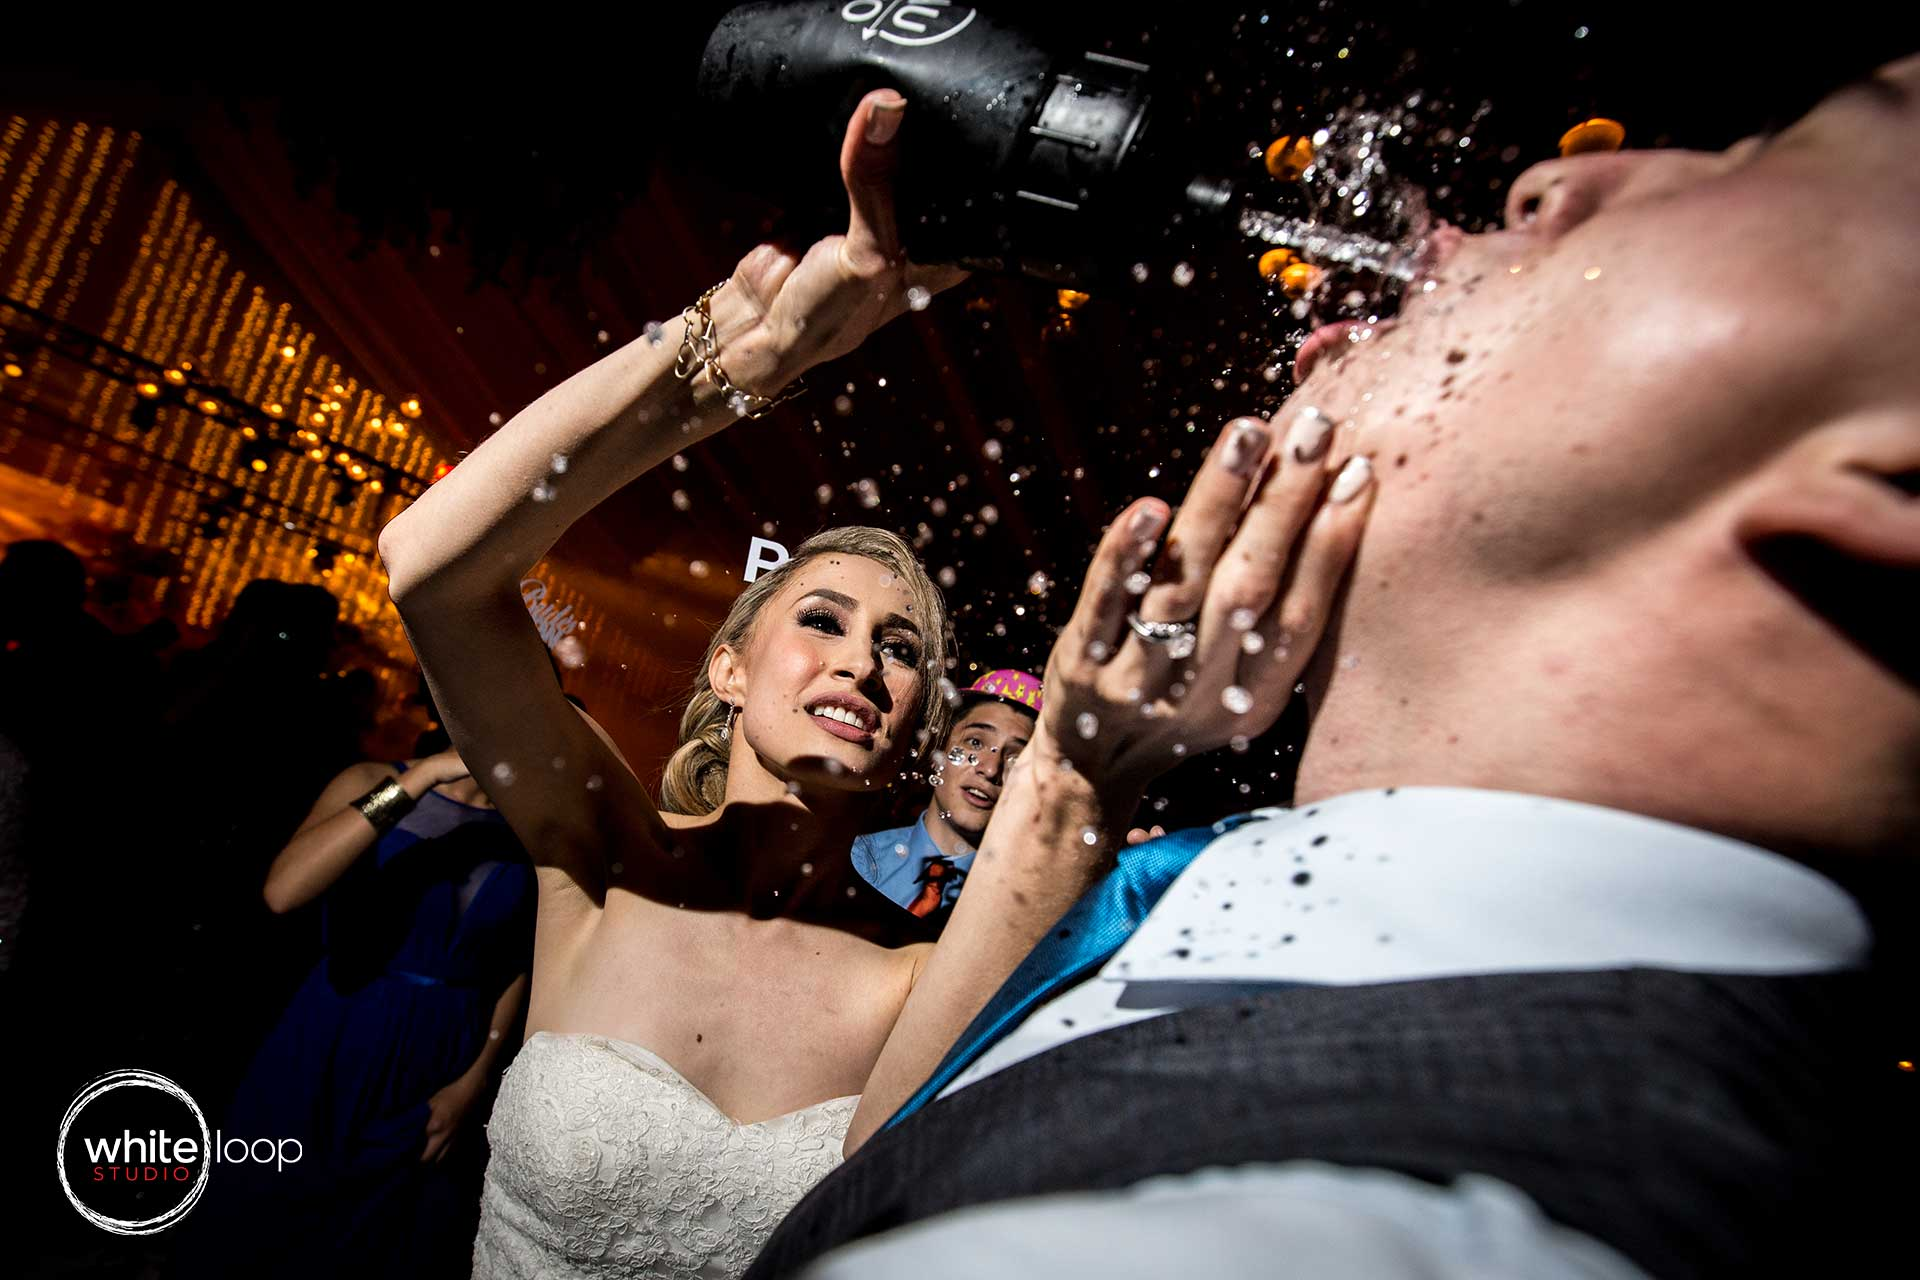 The bride giving a big shot from a thermos to the groom as they celebrate and have fun.